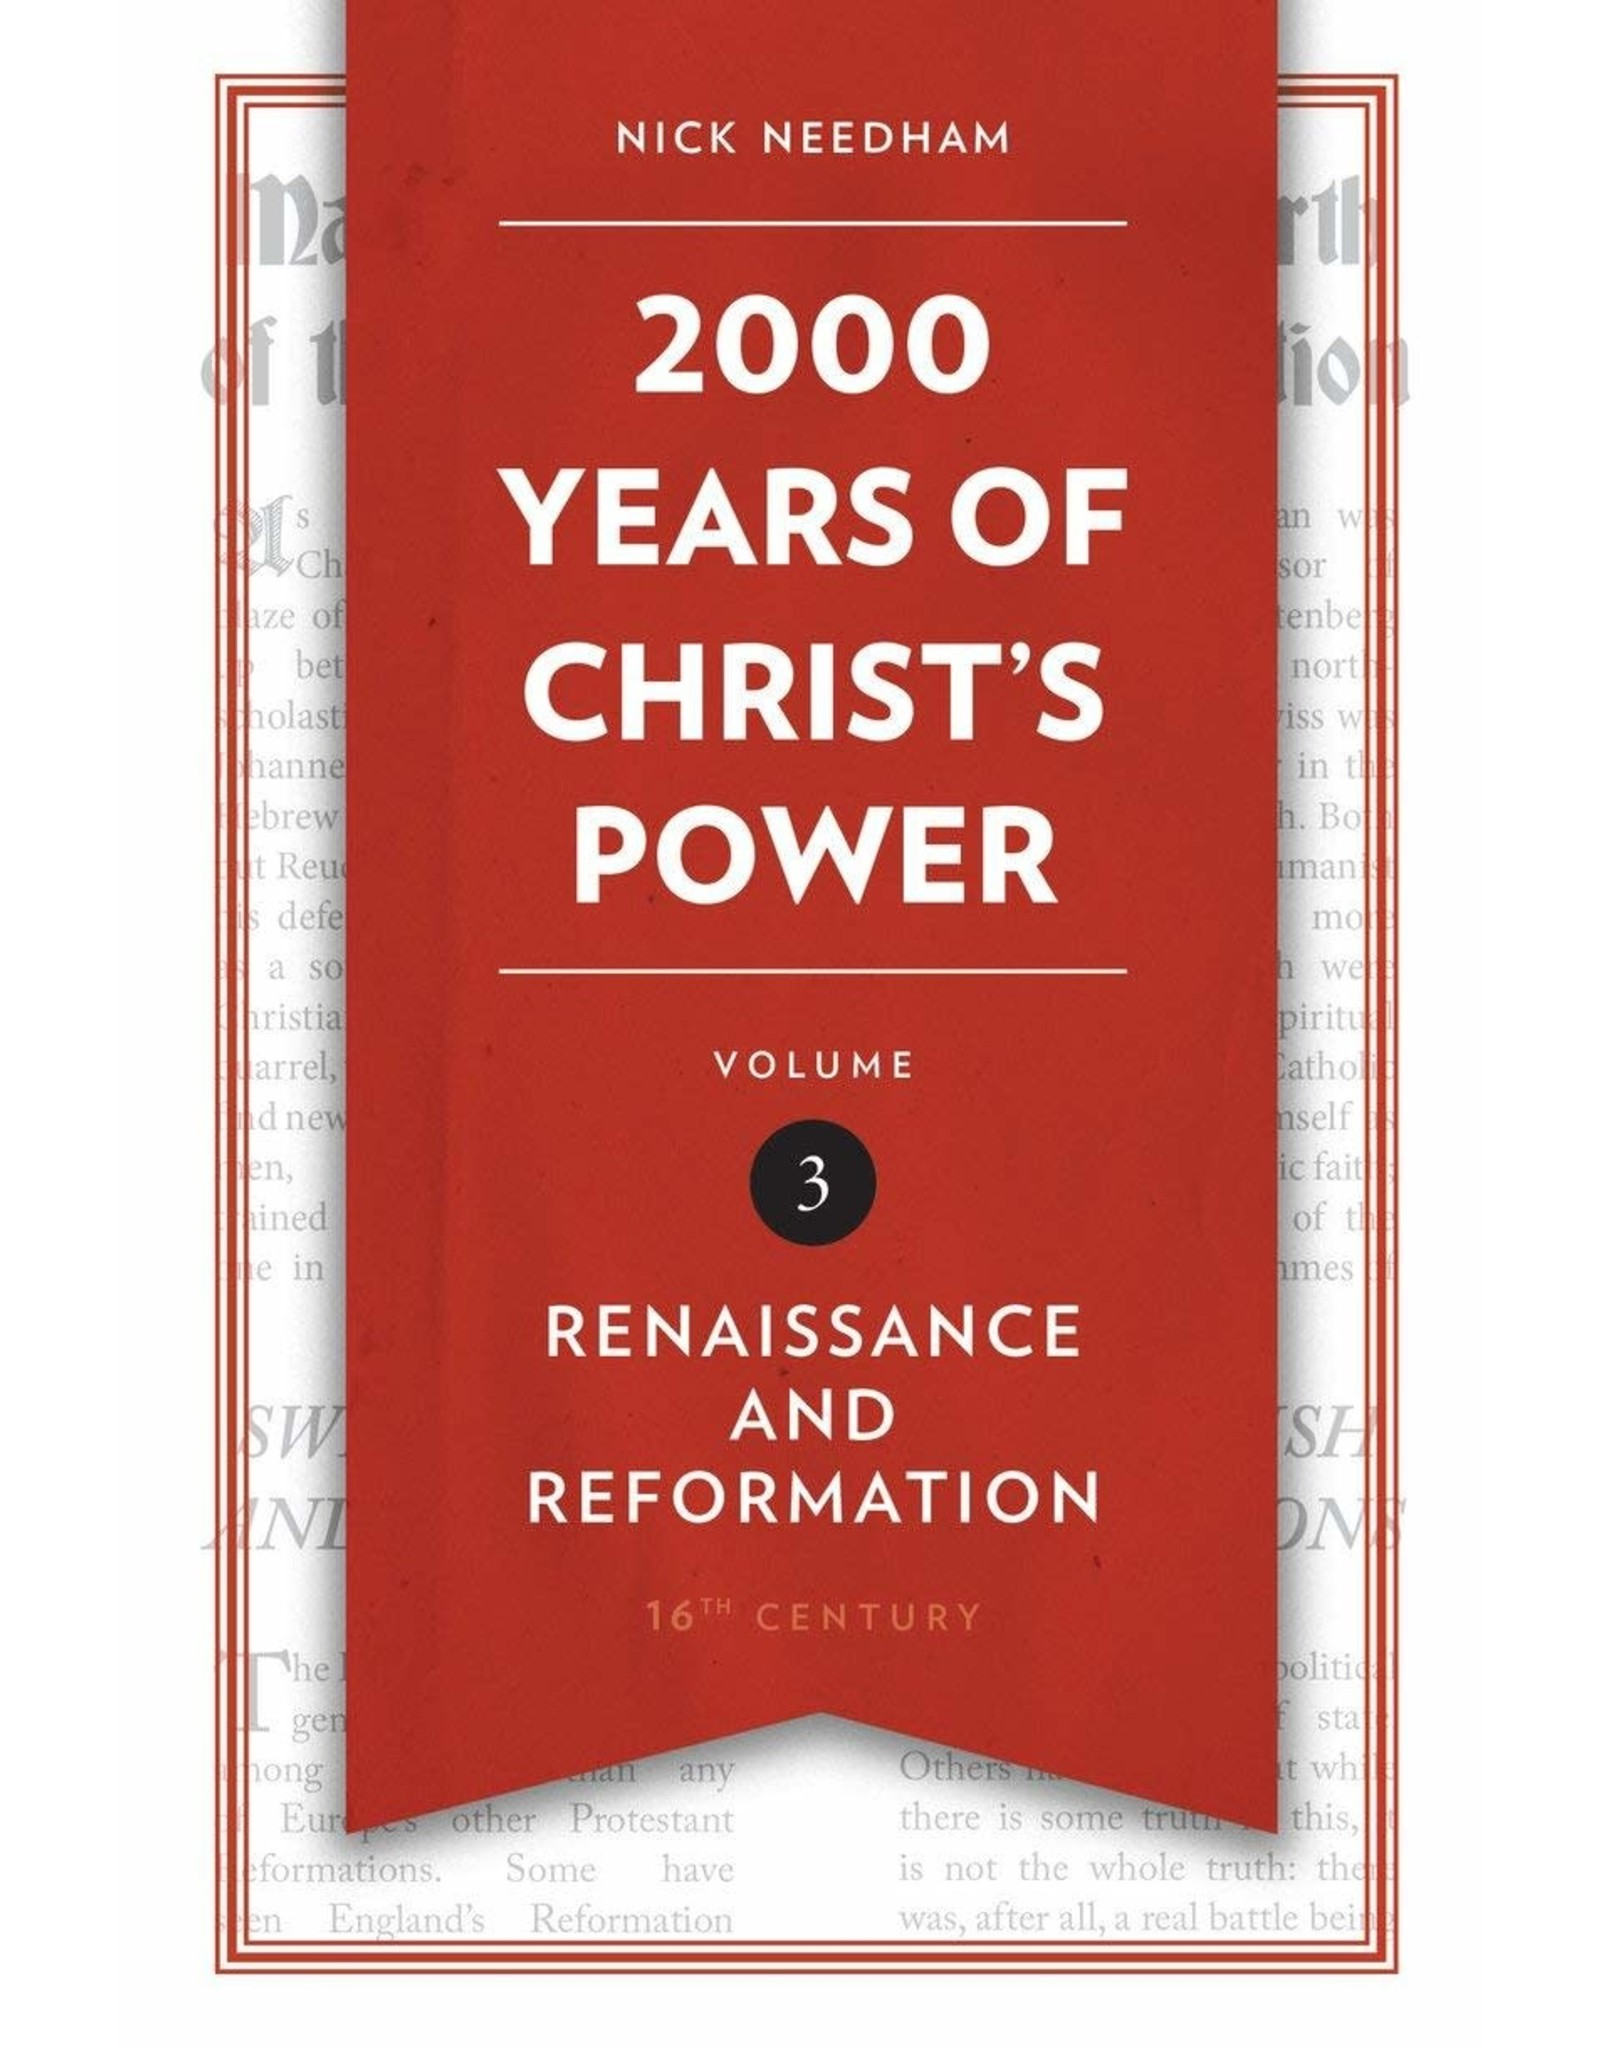 Christian Focus Publications (Atlas) 2000 Years of Christ's Power Volume 3: Renaissance and Reformation, 16th Century